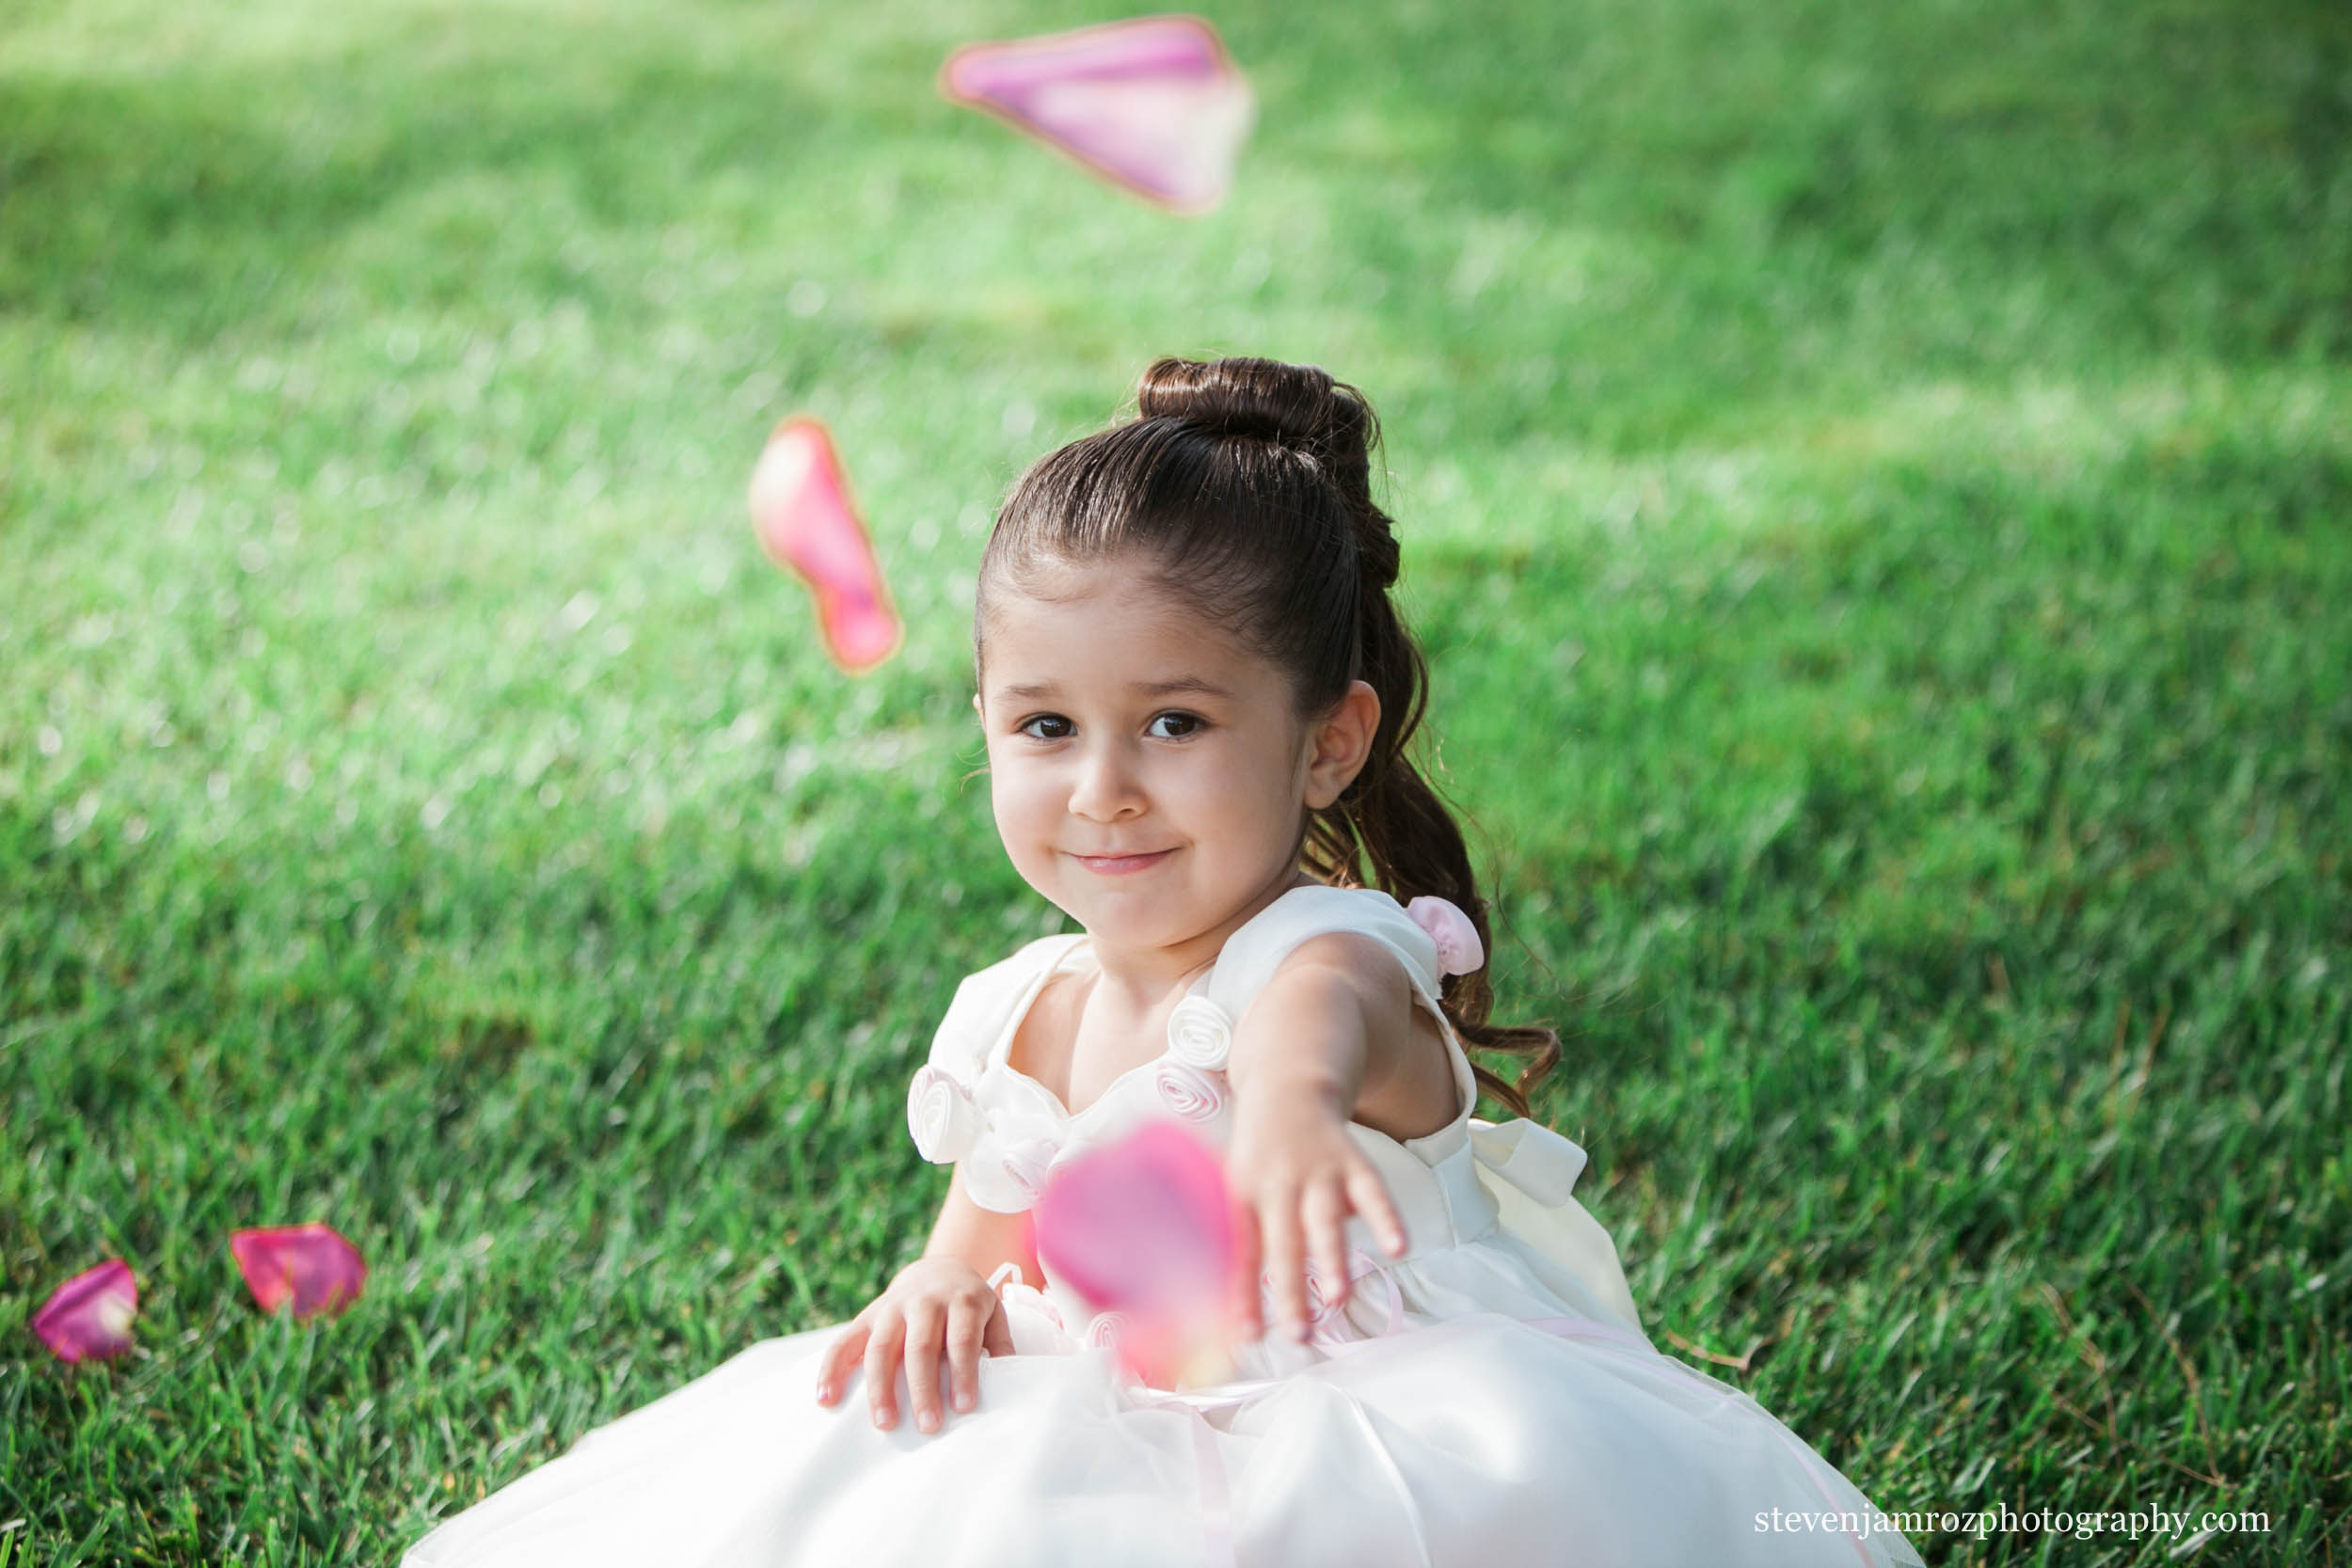 throwing-flowers-girl-wedding-raleigh-nc-steven-jamroz-photography-0130.jpg